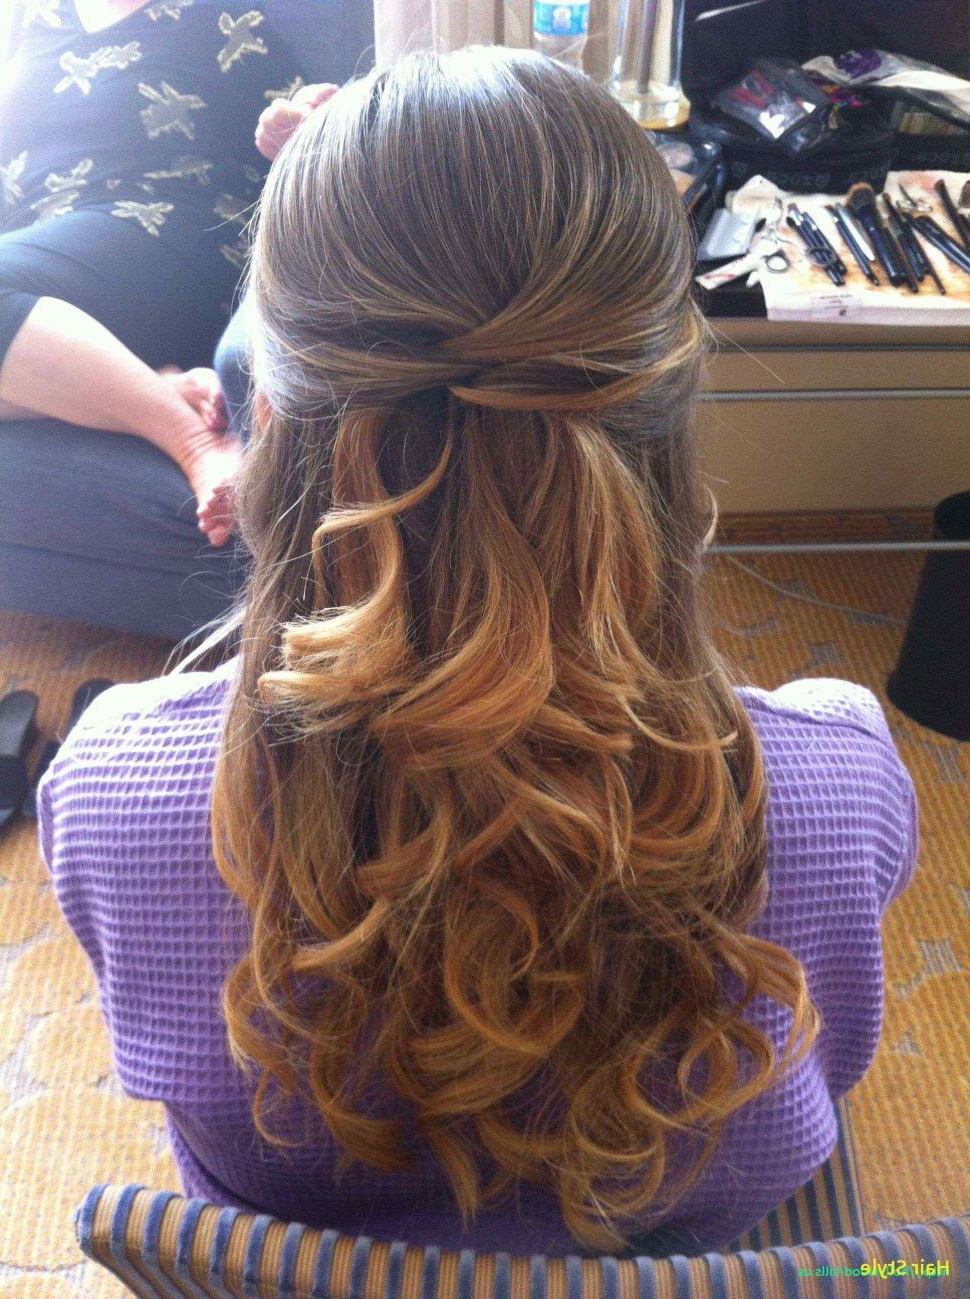 Hairstyles : Curls Half Up Hairstyle Adorable Fashion Within Well Known Curled Half Up Hairstyles (View 9 of 20)